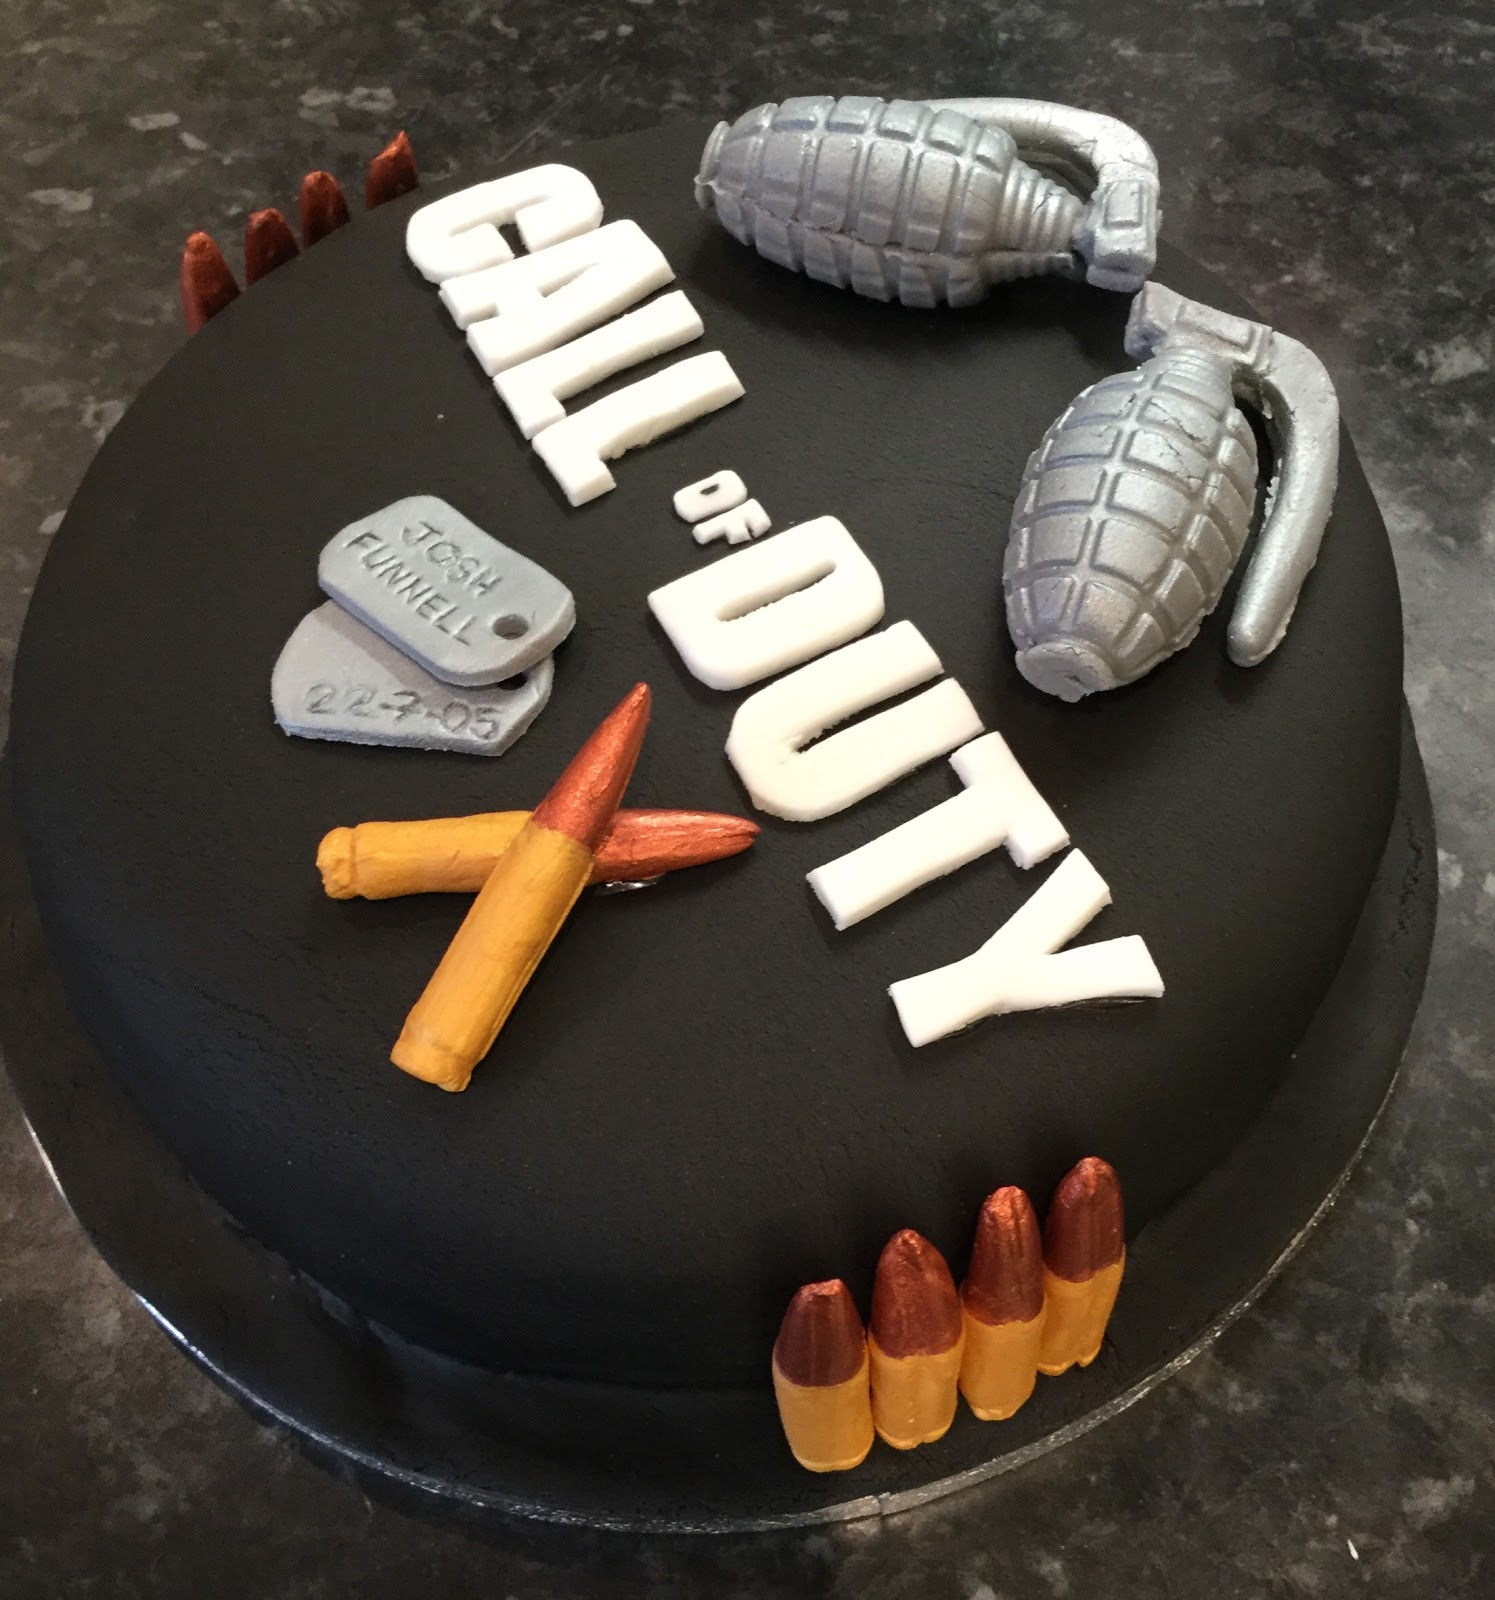 Awesome Call Of Duty Birthday Cake Emmas Cakes For Fun The Call Of Duty Funny Birthday Cards Online Inifodamsfinfo